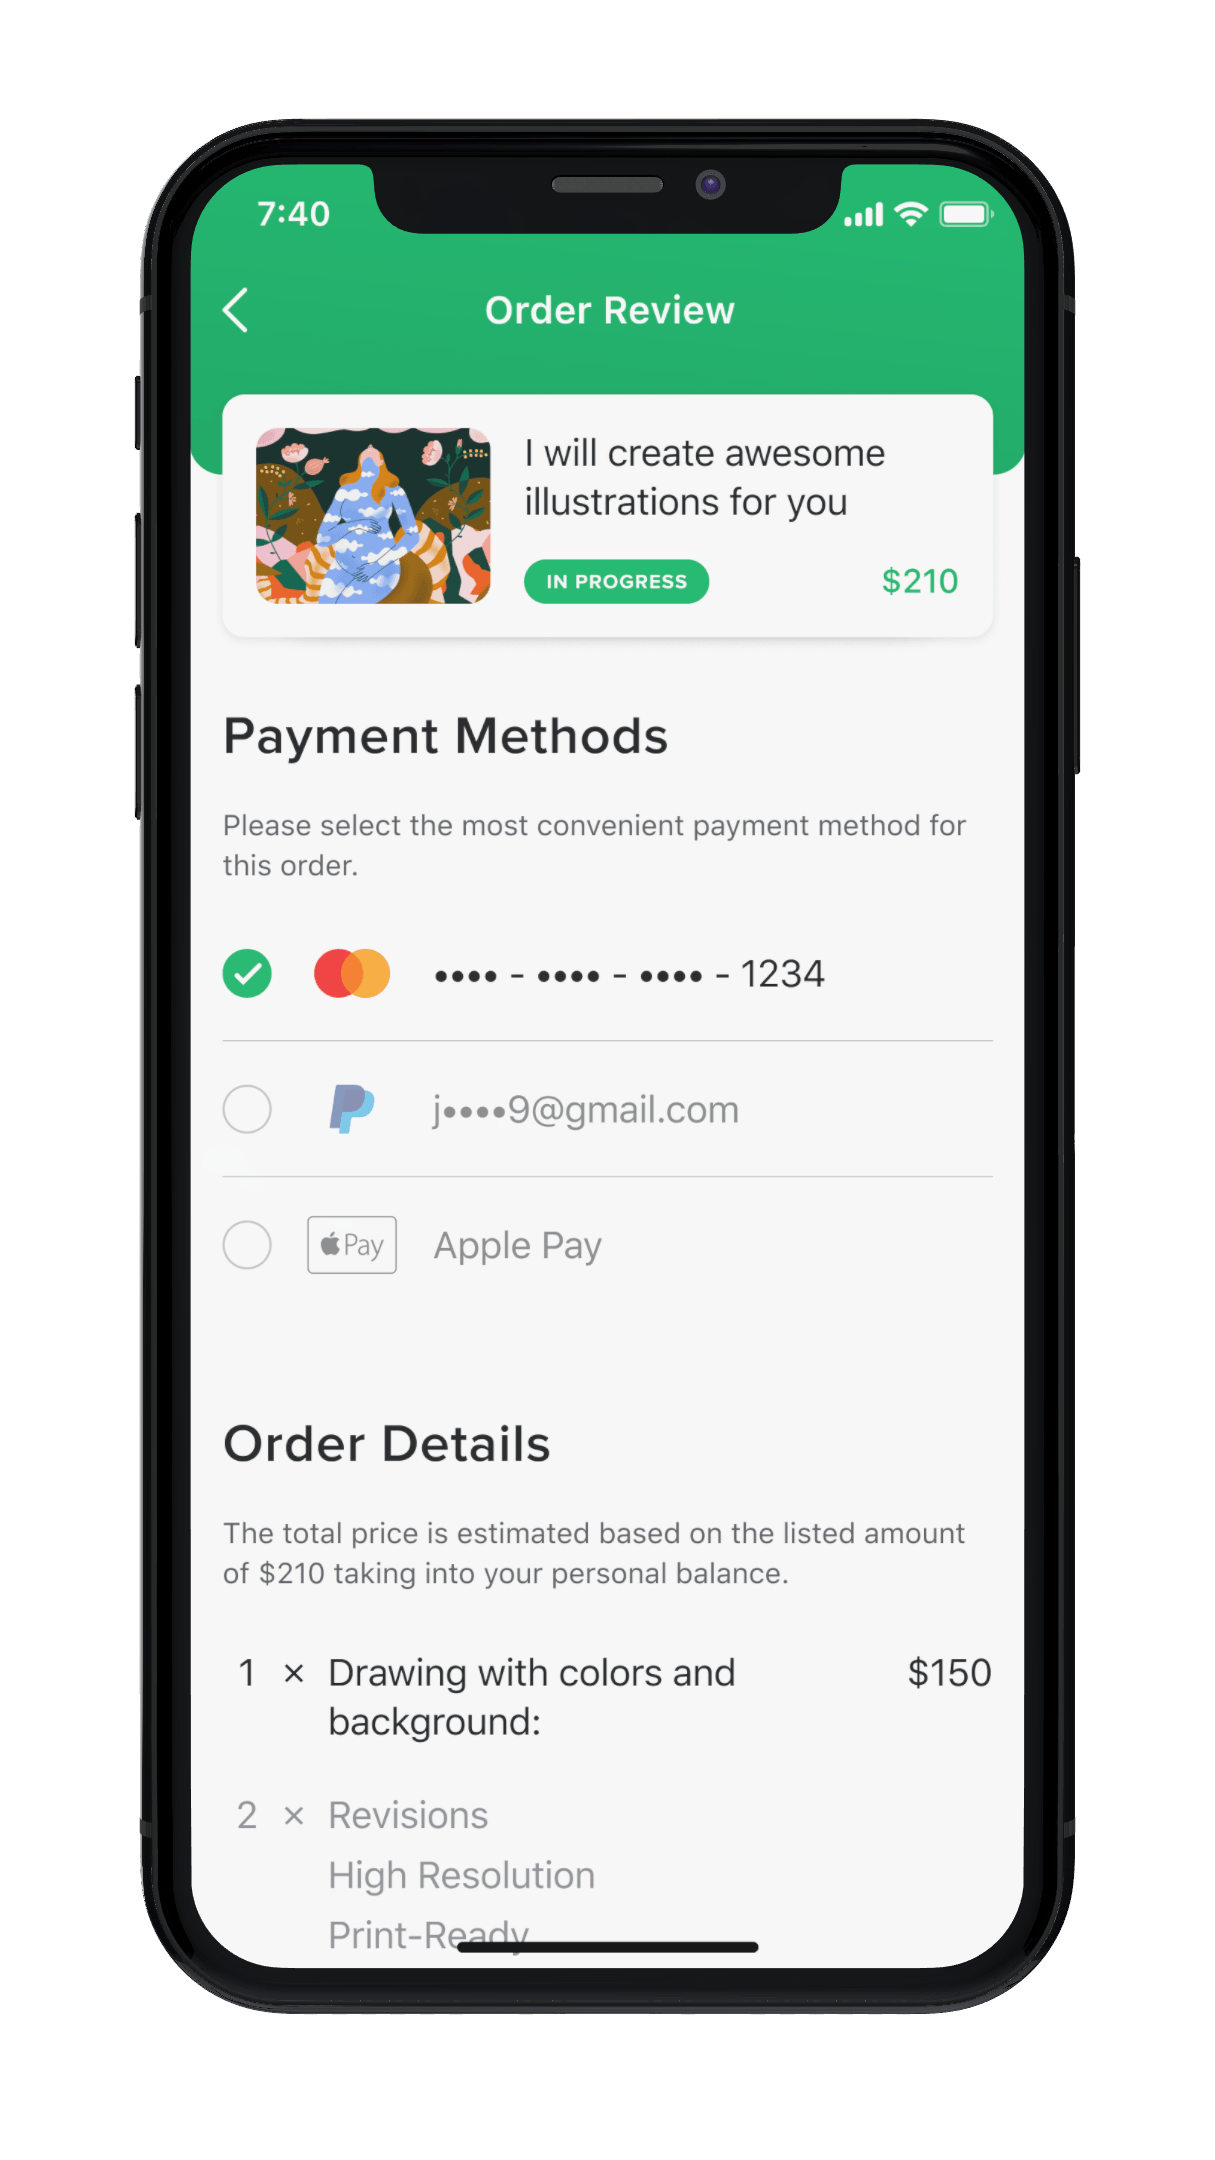 orderreview_10